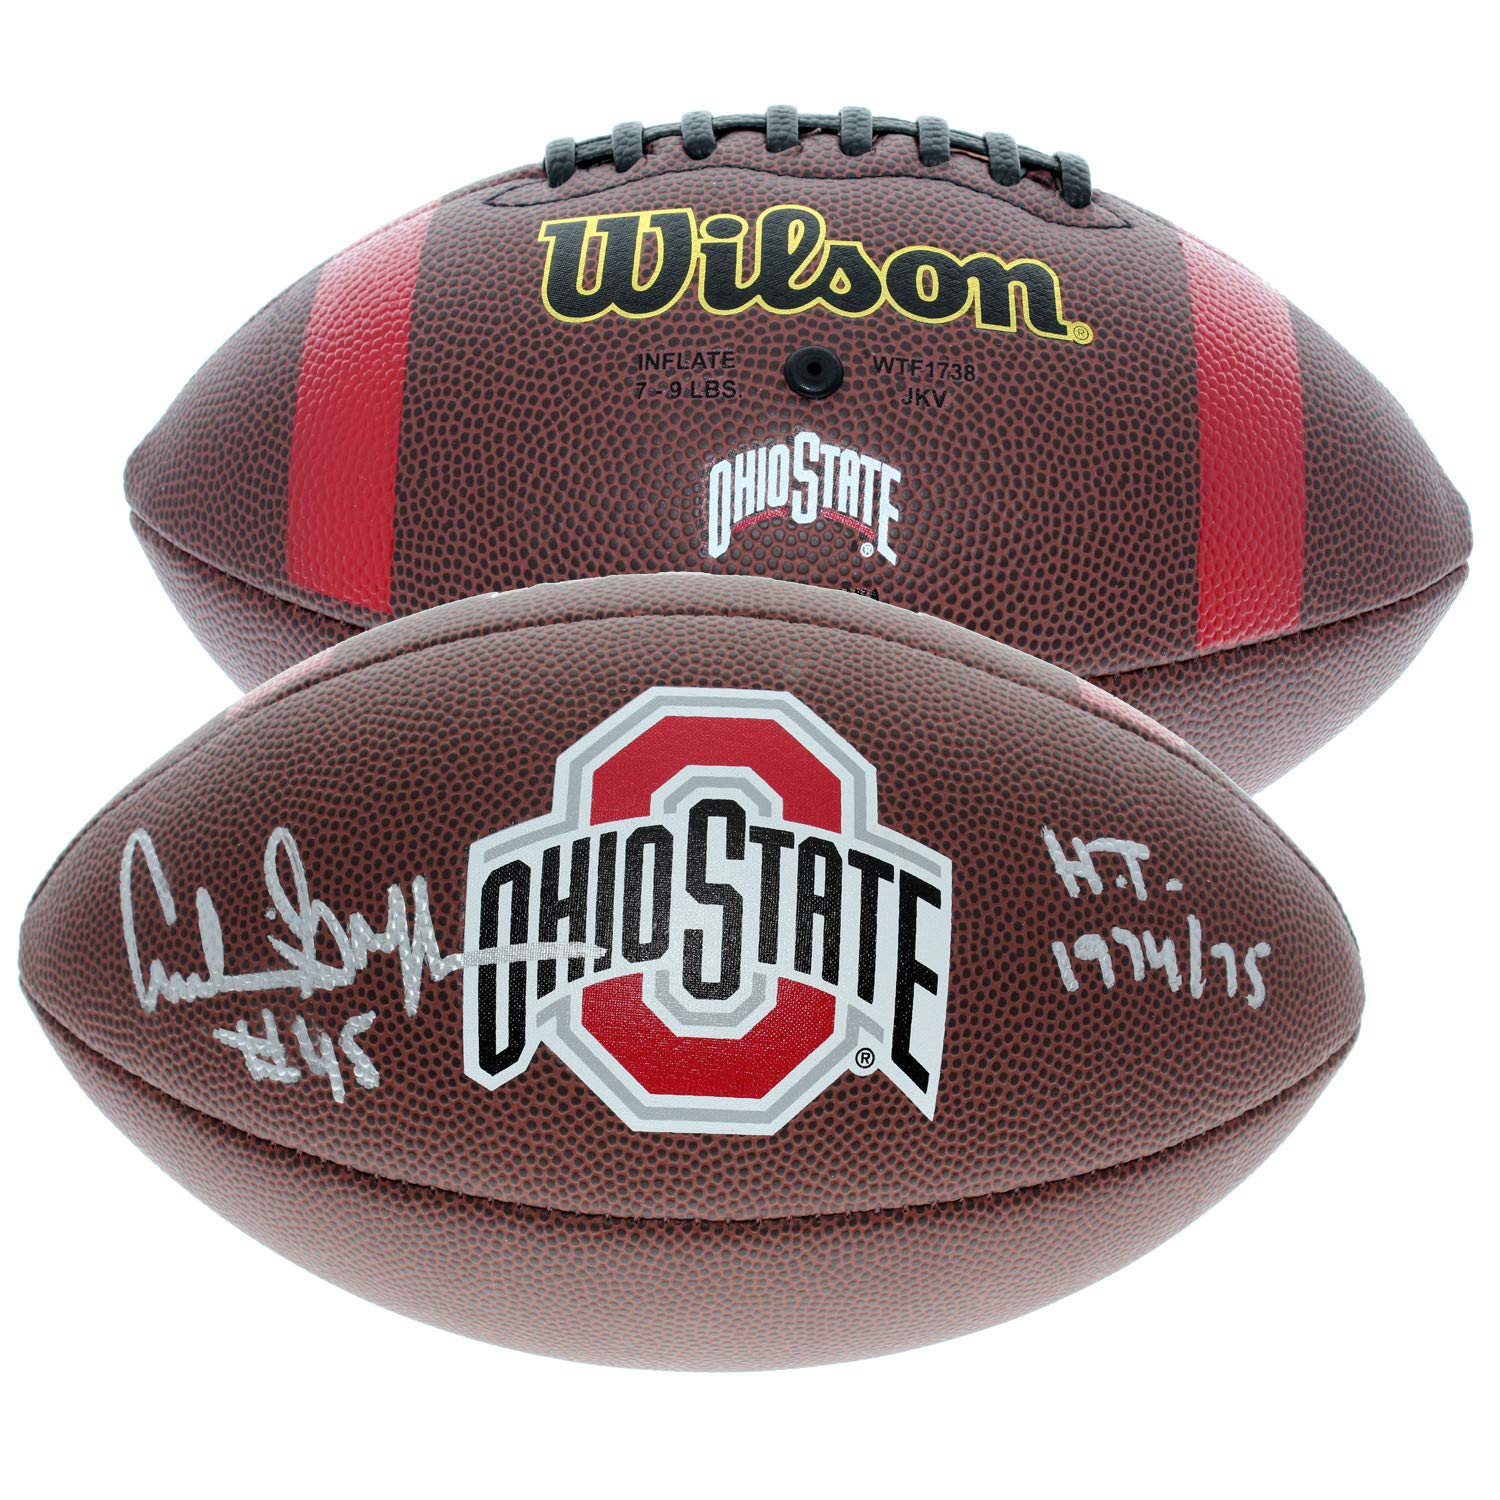 Archie Griffin Autographed Signed Ohio State Buckeyes Wilson NCAA Logo Football with H.T. 1974/75 Inscription - Certified Authentic